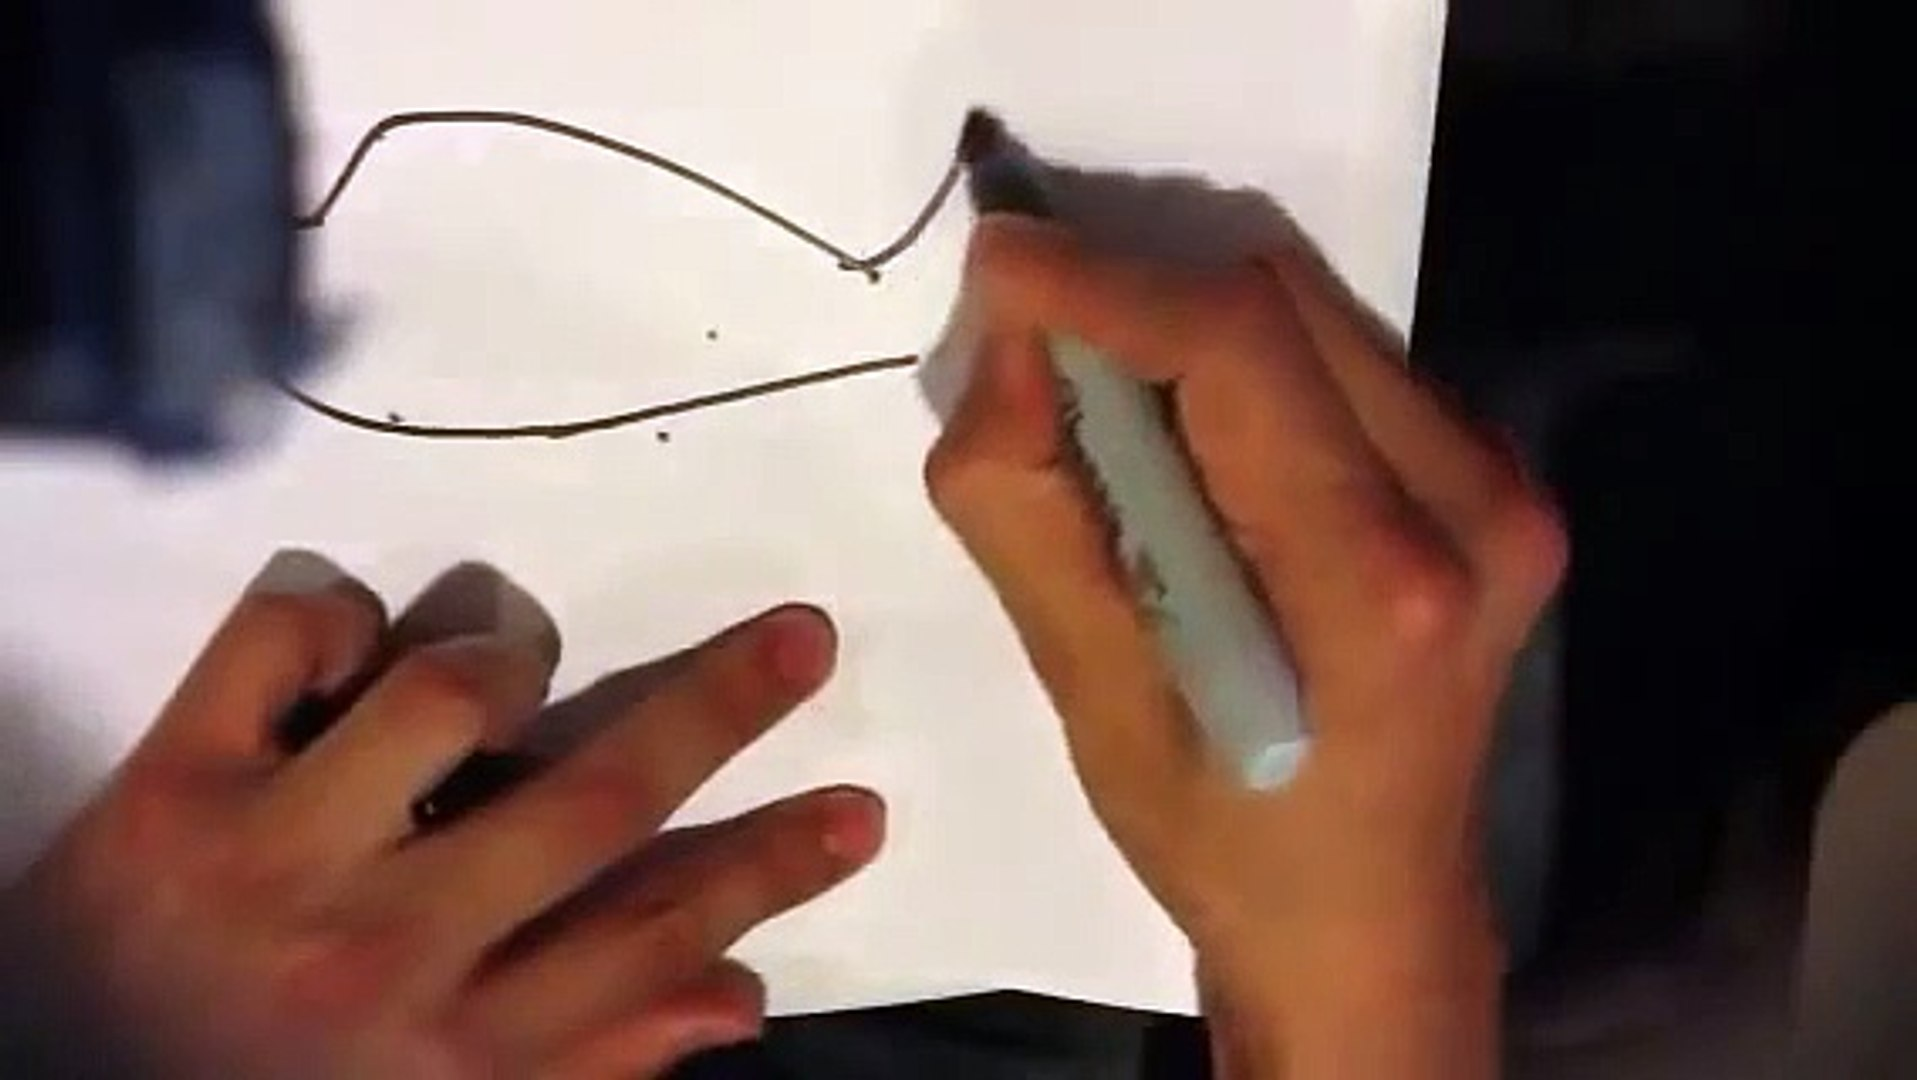 How to draw a plane - easy things to draw